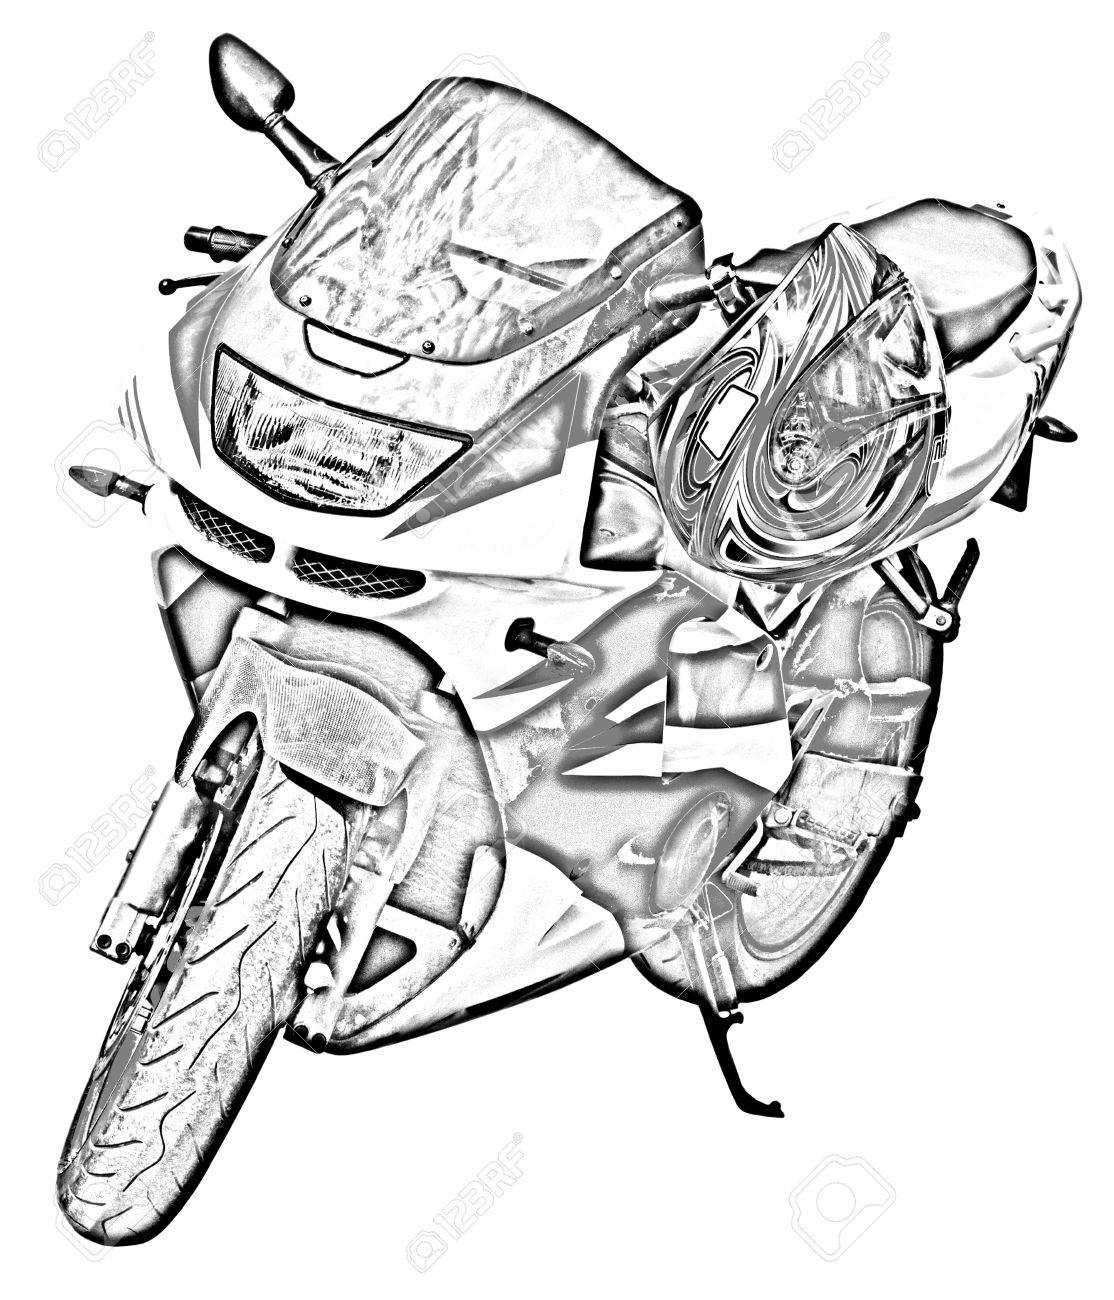 1114x1300 Motorcycle Drawing Stock Photo, Picture And Royalty Free Image